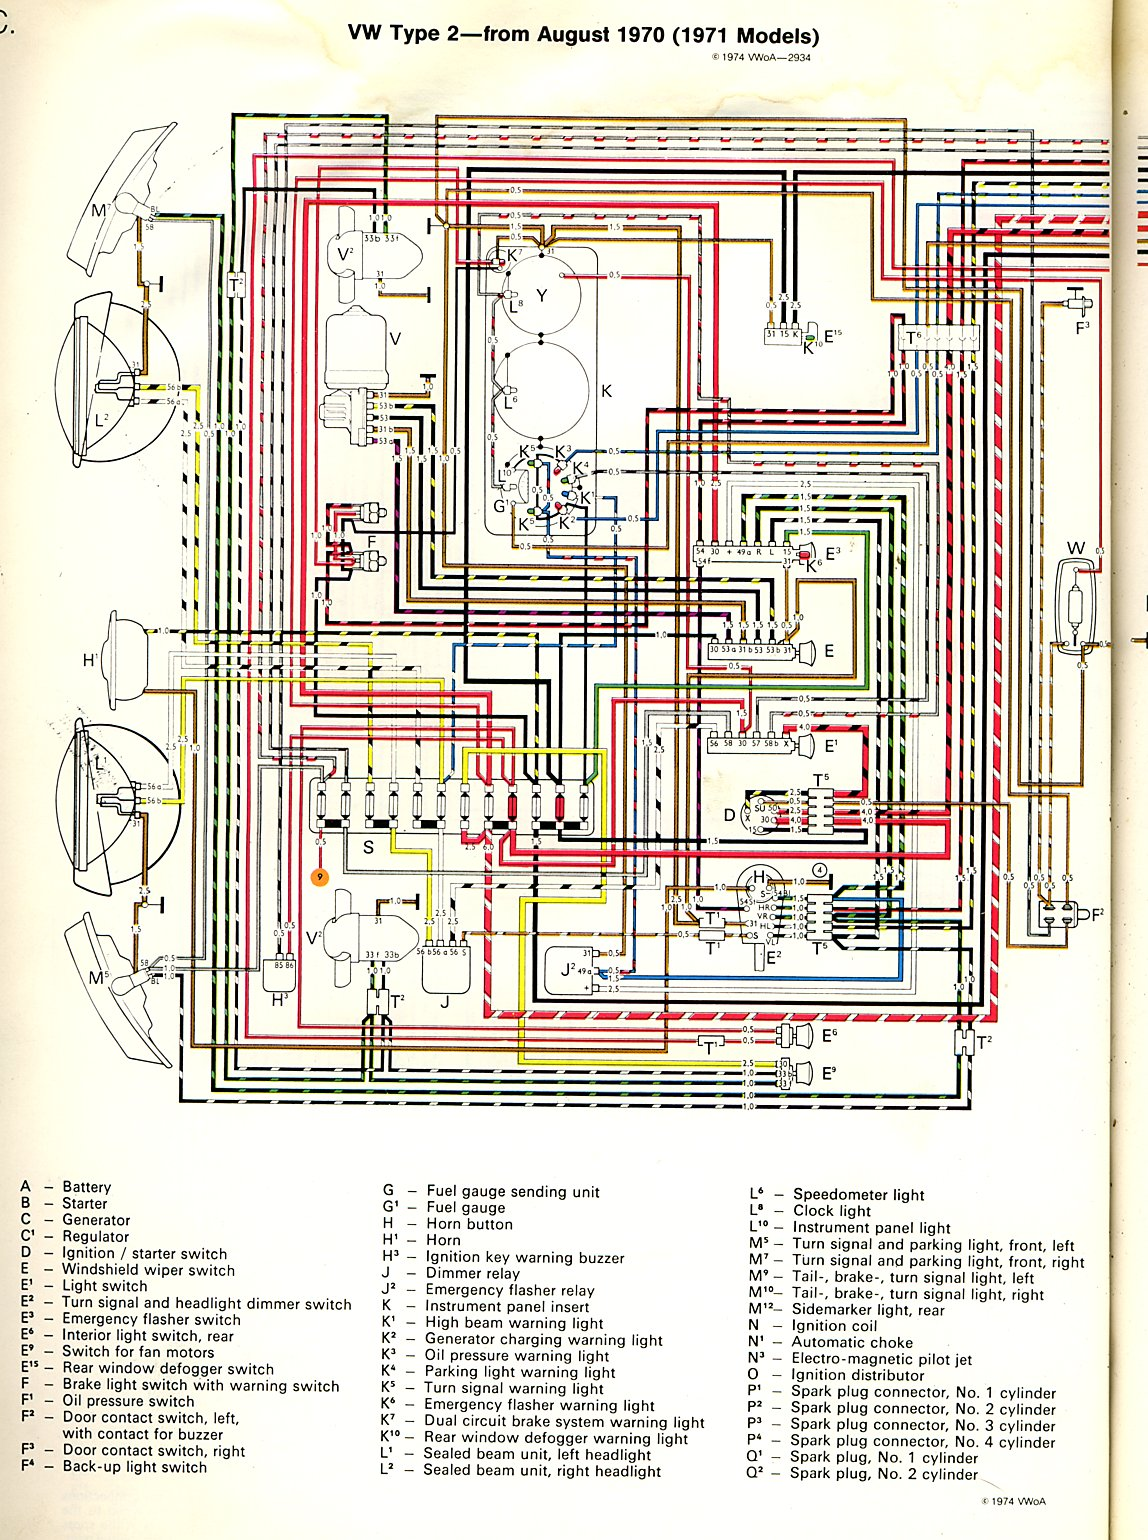 thesamba com type 2 wiring diagrams starter wiring highlight 1971 merged version rear window defroster and ambulance fans original factory diagrams fuse box is depicted wrong